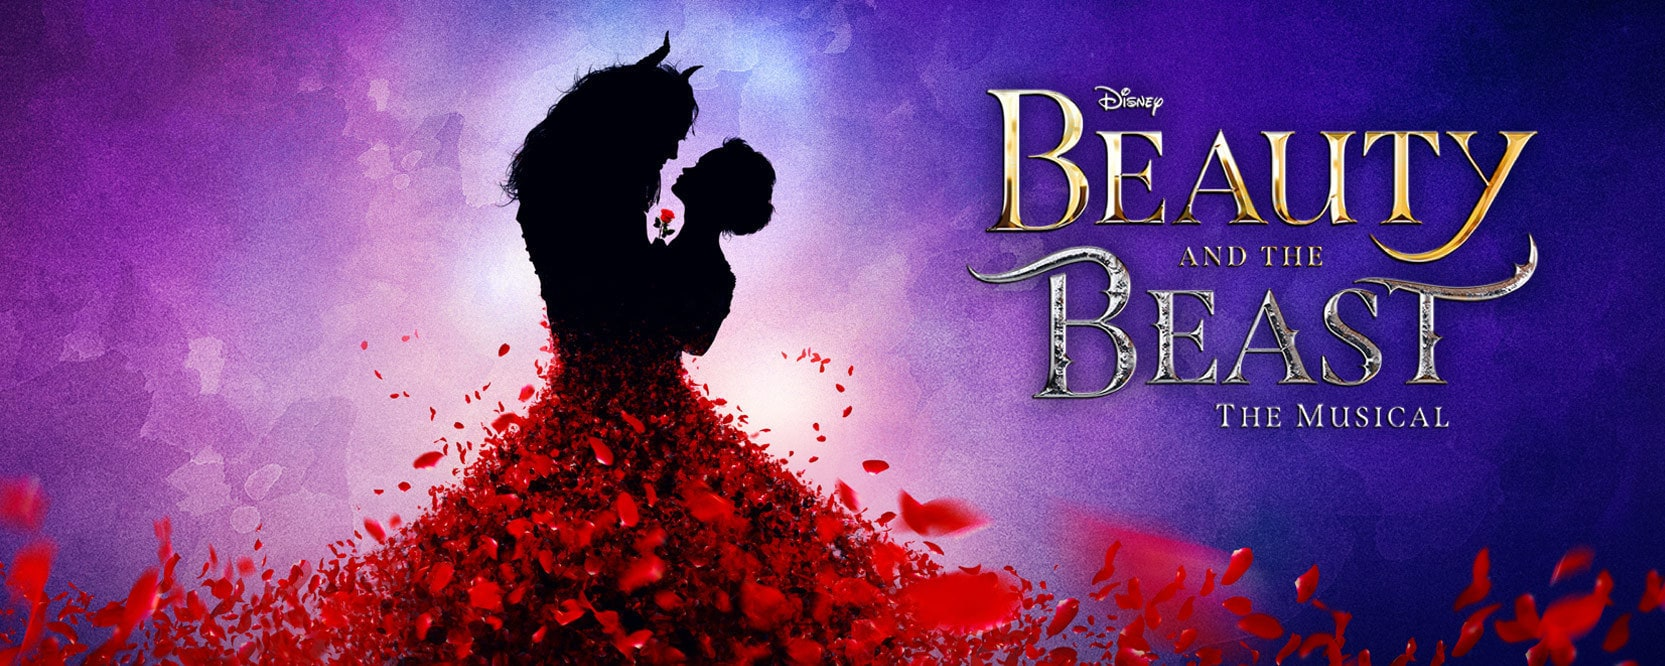 Beauty and The Beast Press Kit